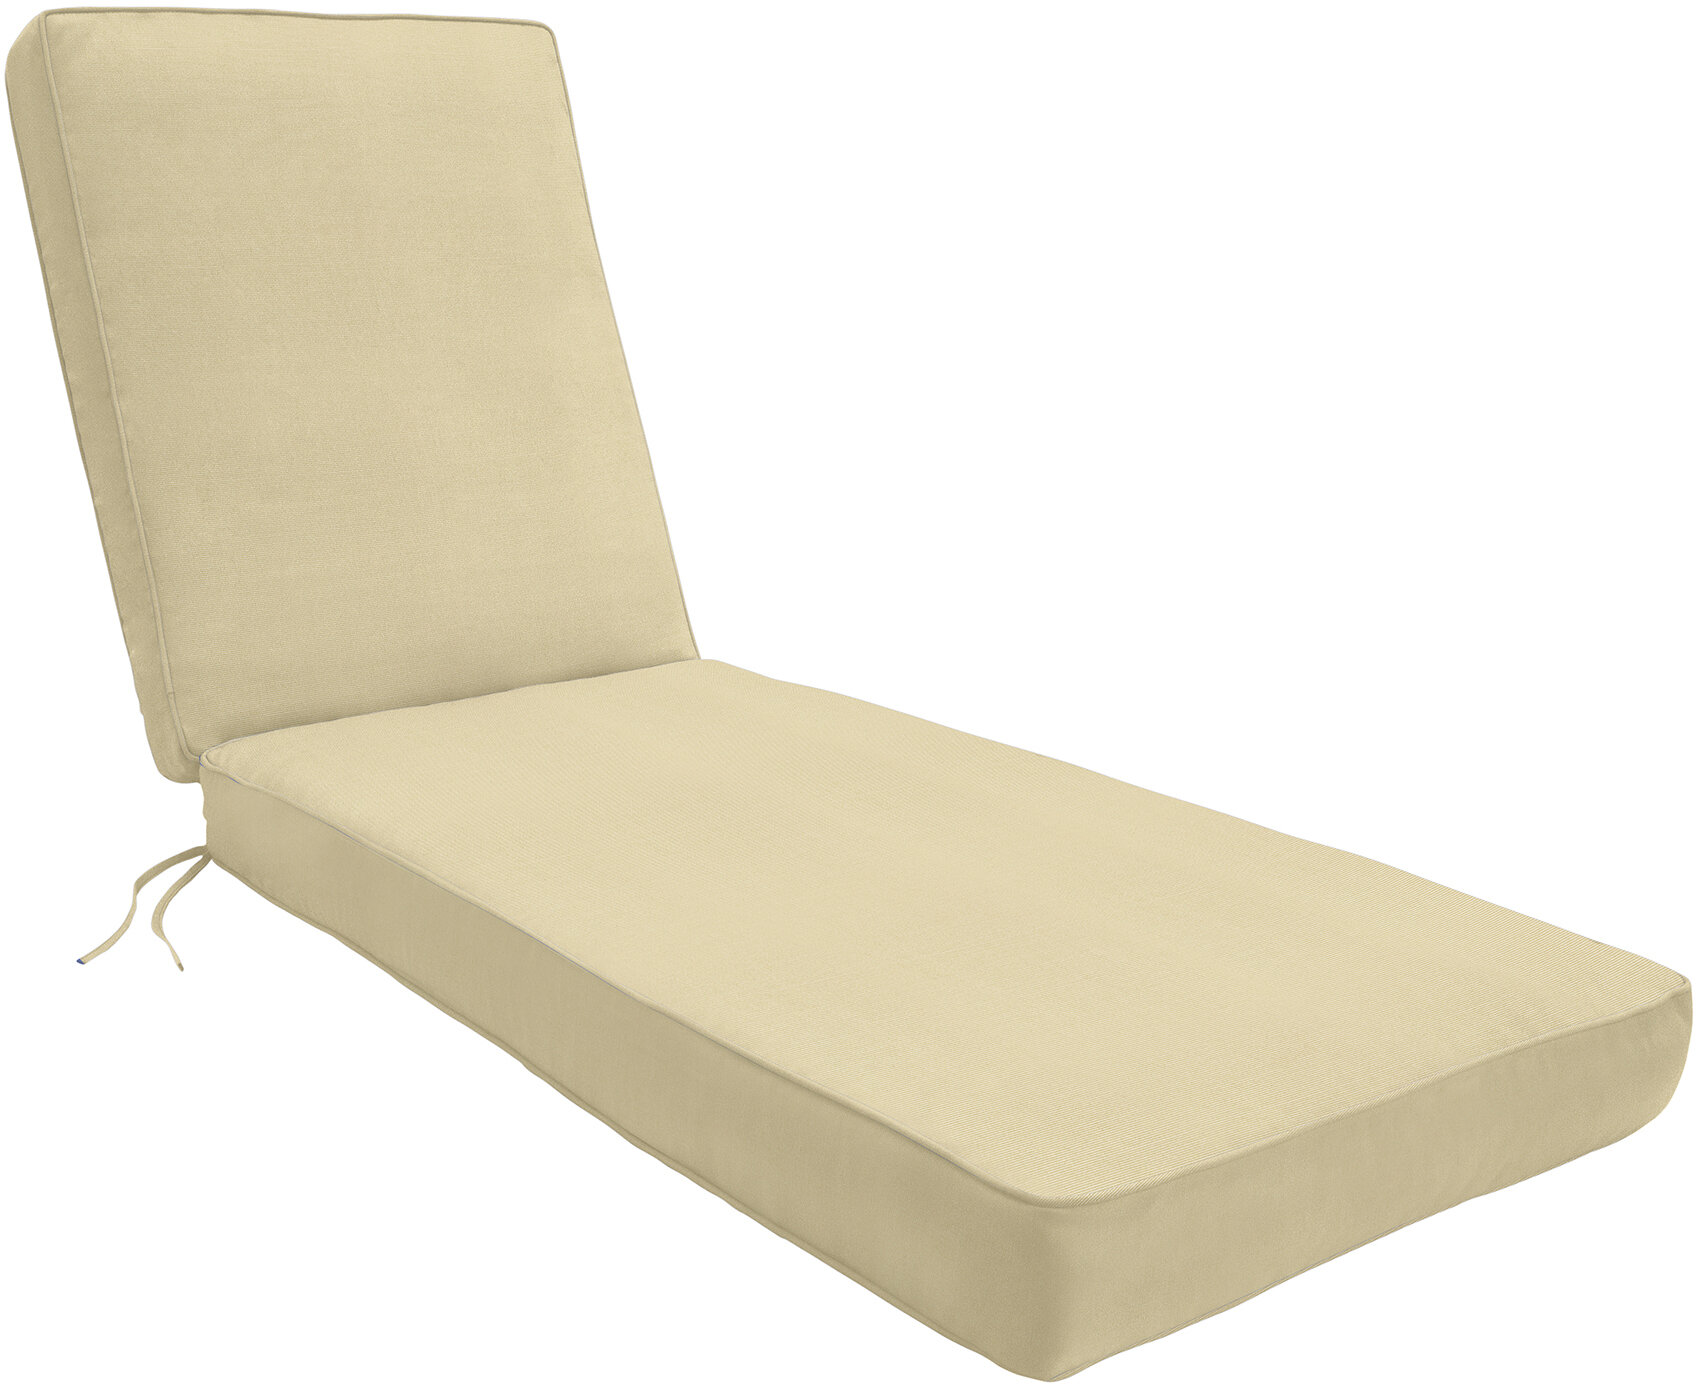 chair throughout cushions chairs resin and cushion with chaise wicker outdoor alcee lounge